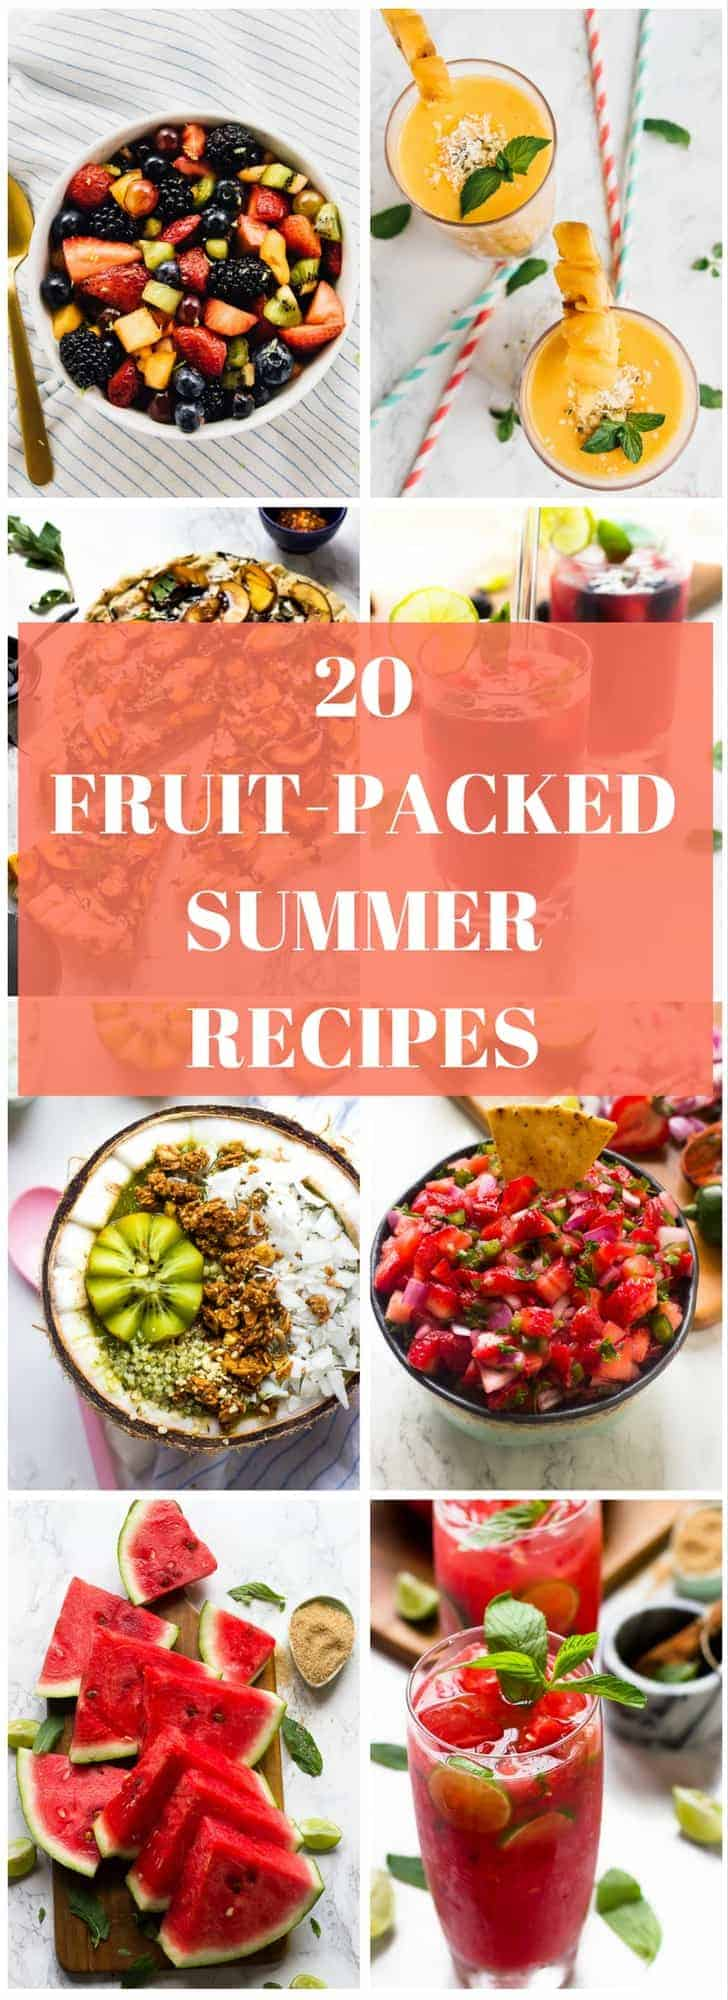 Try these 20 Fruit-Packed Summer Recipes for Summer 2017! They are loaded with so much juicy flavour and will please your family and friends!